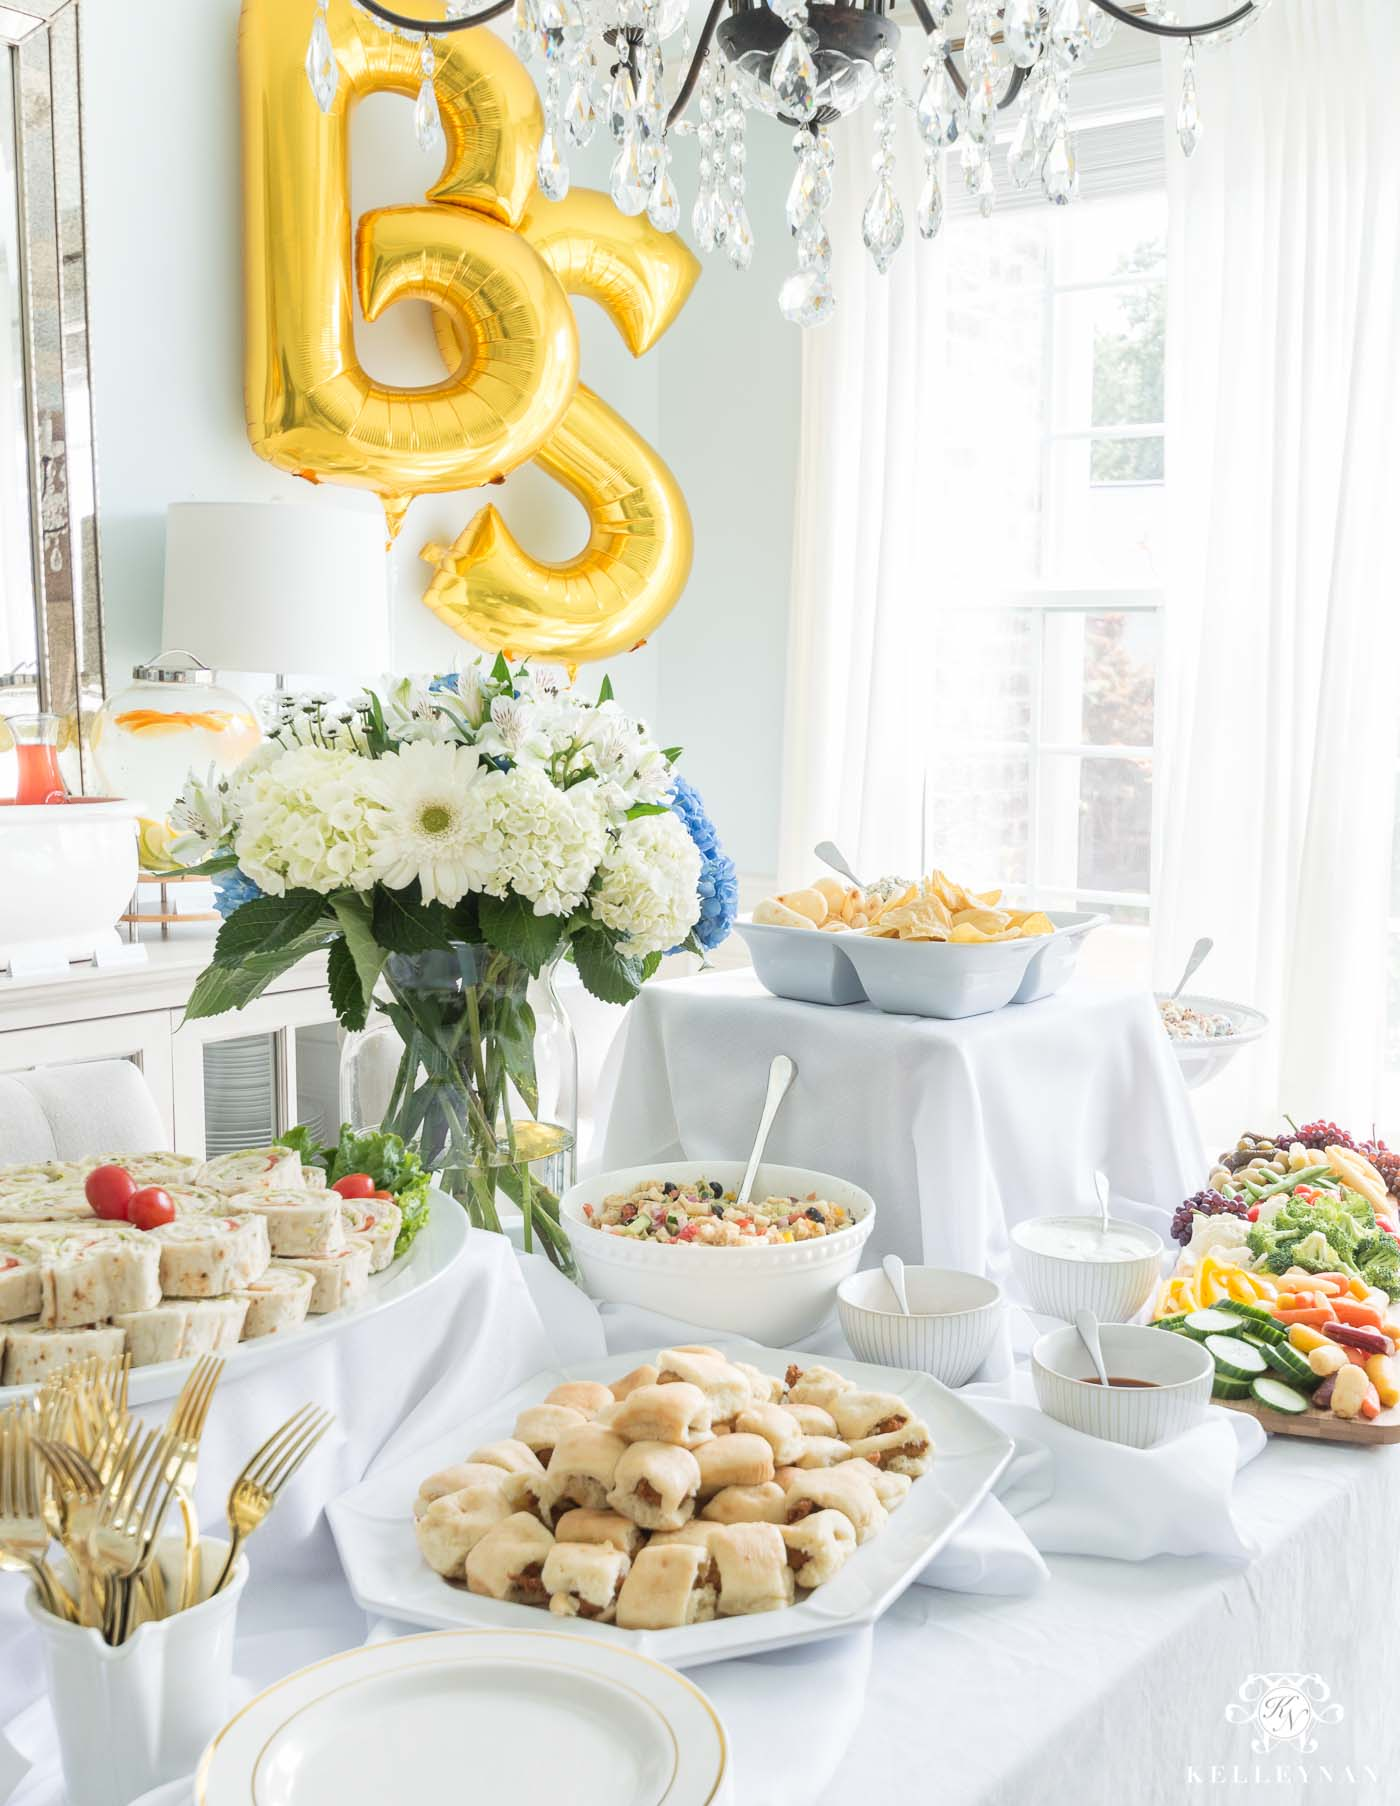 Baby Shower Food Table Setup and Easy Menu Ideas